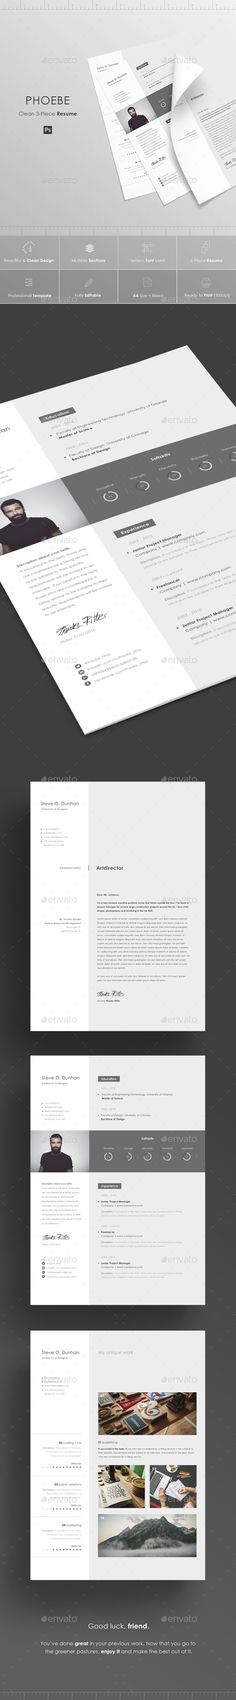 Resume - #Resumes #Stationery Download here: https://graphicriver.net/item/resume/15399223?ref=alena994